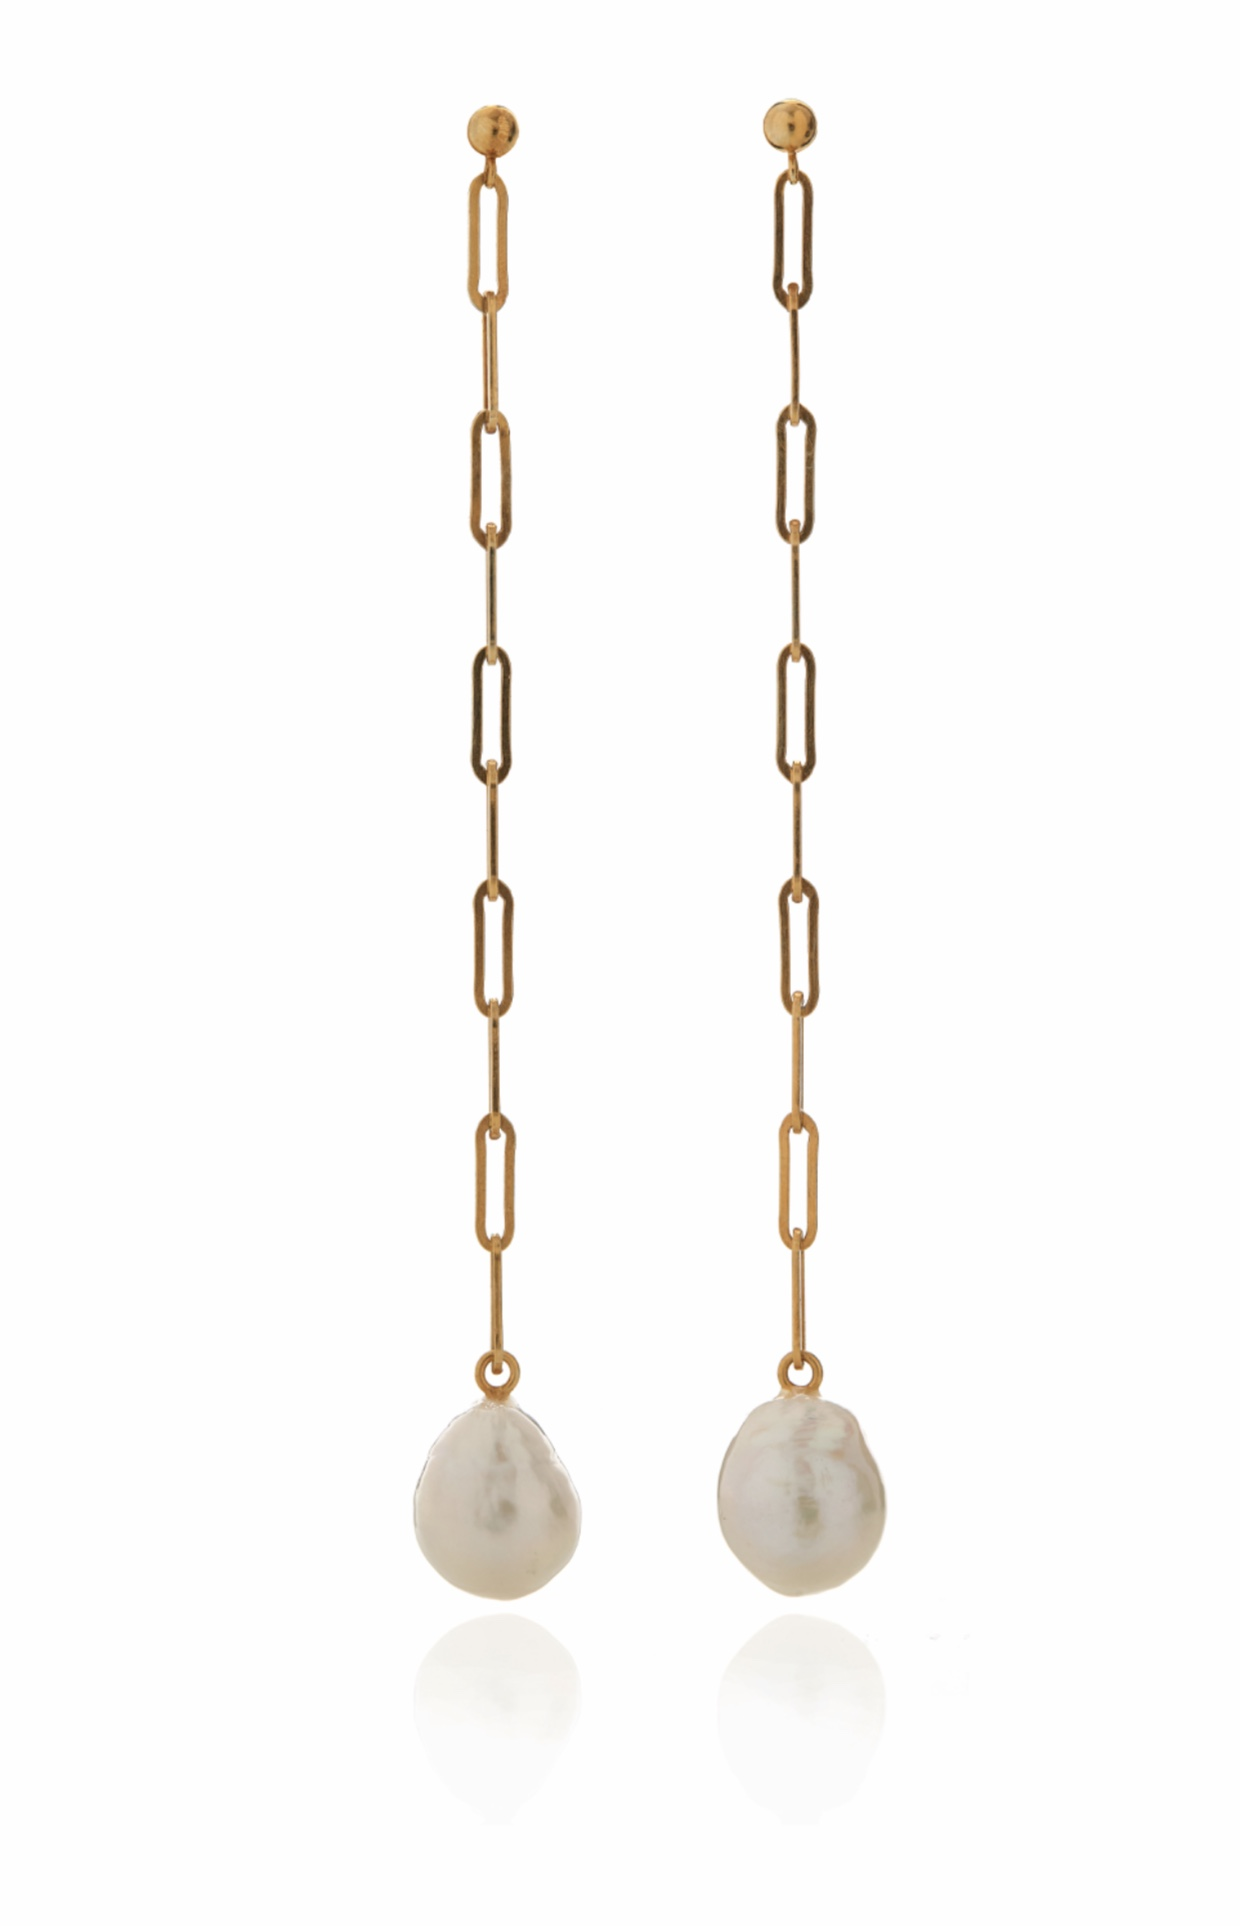 Ceres goldplated 24k eardrops with big round white pearls